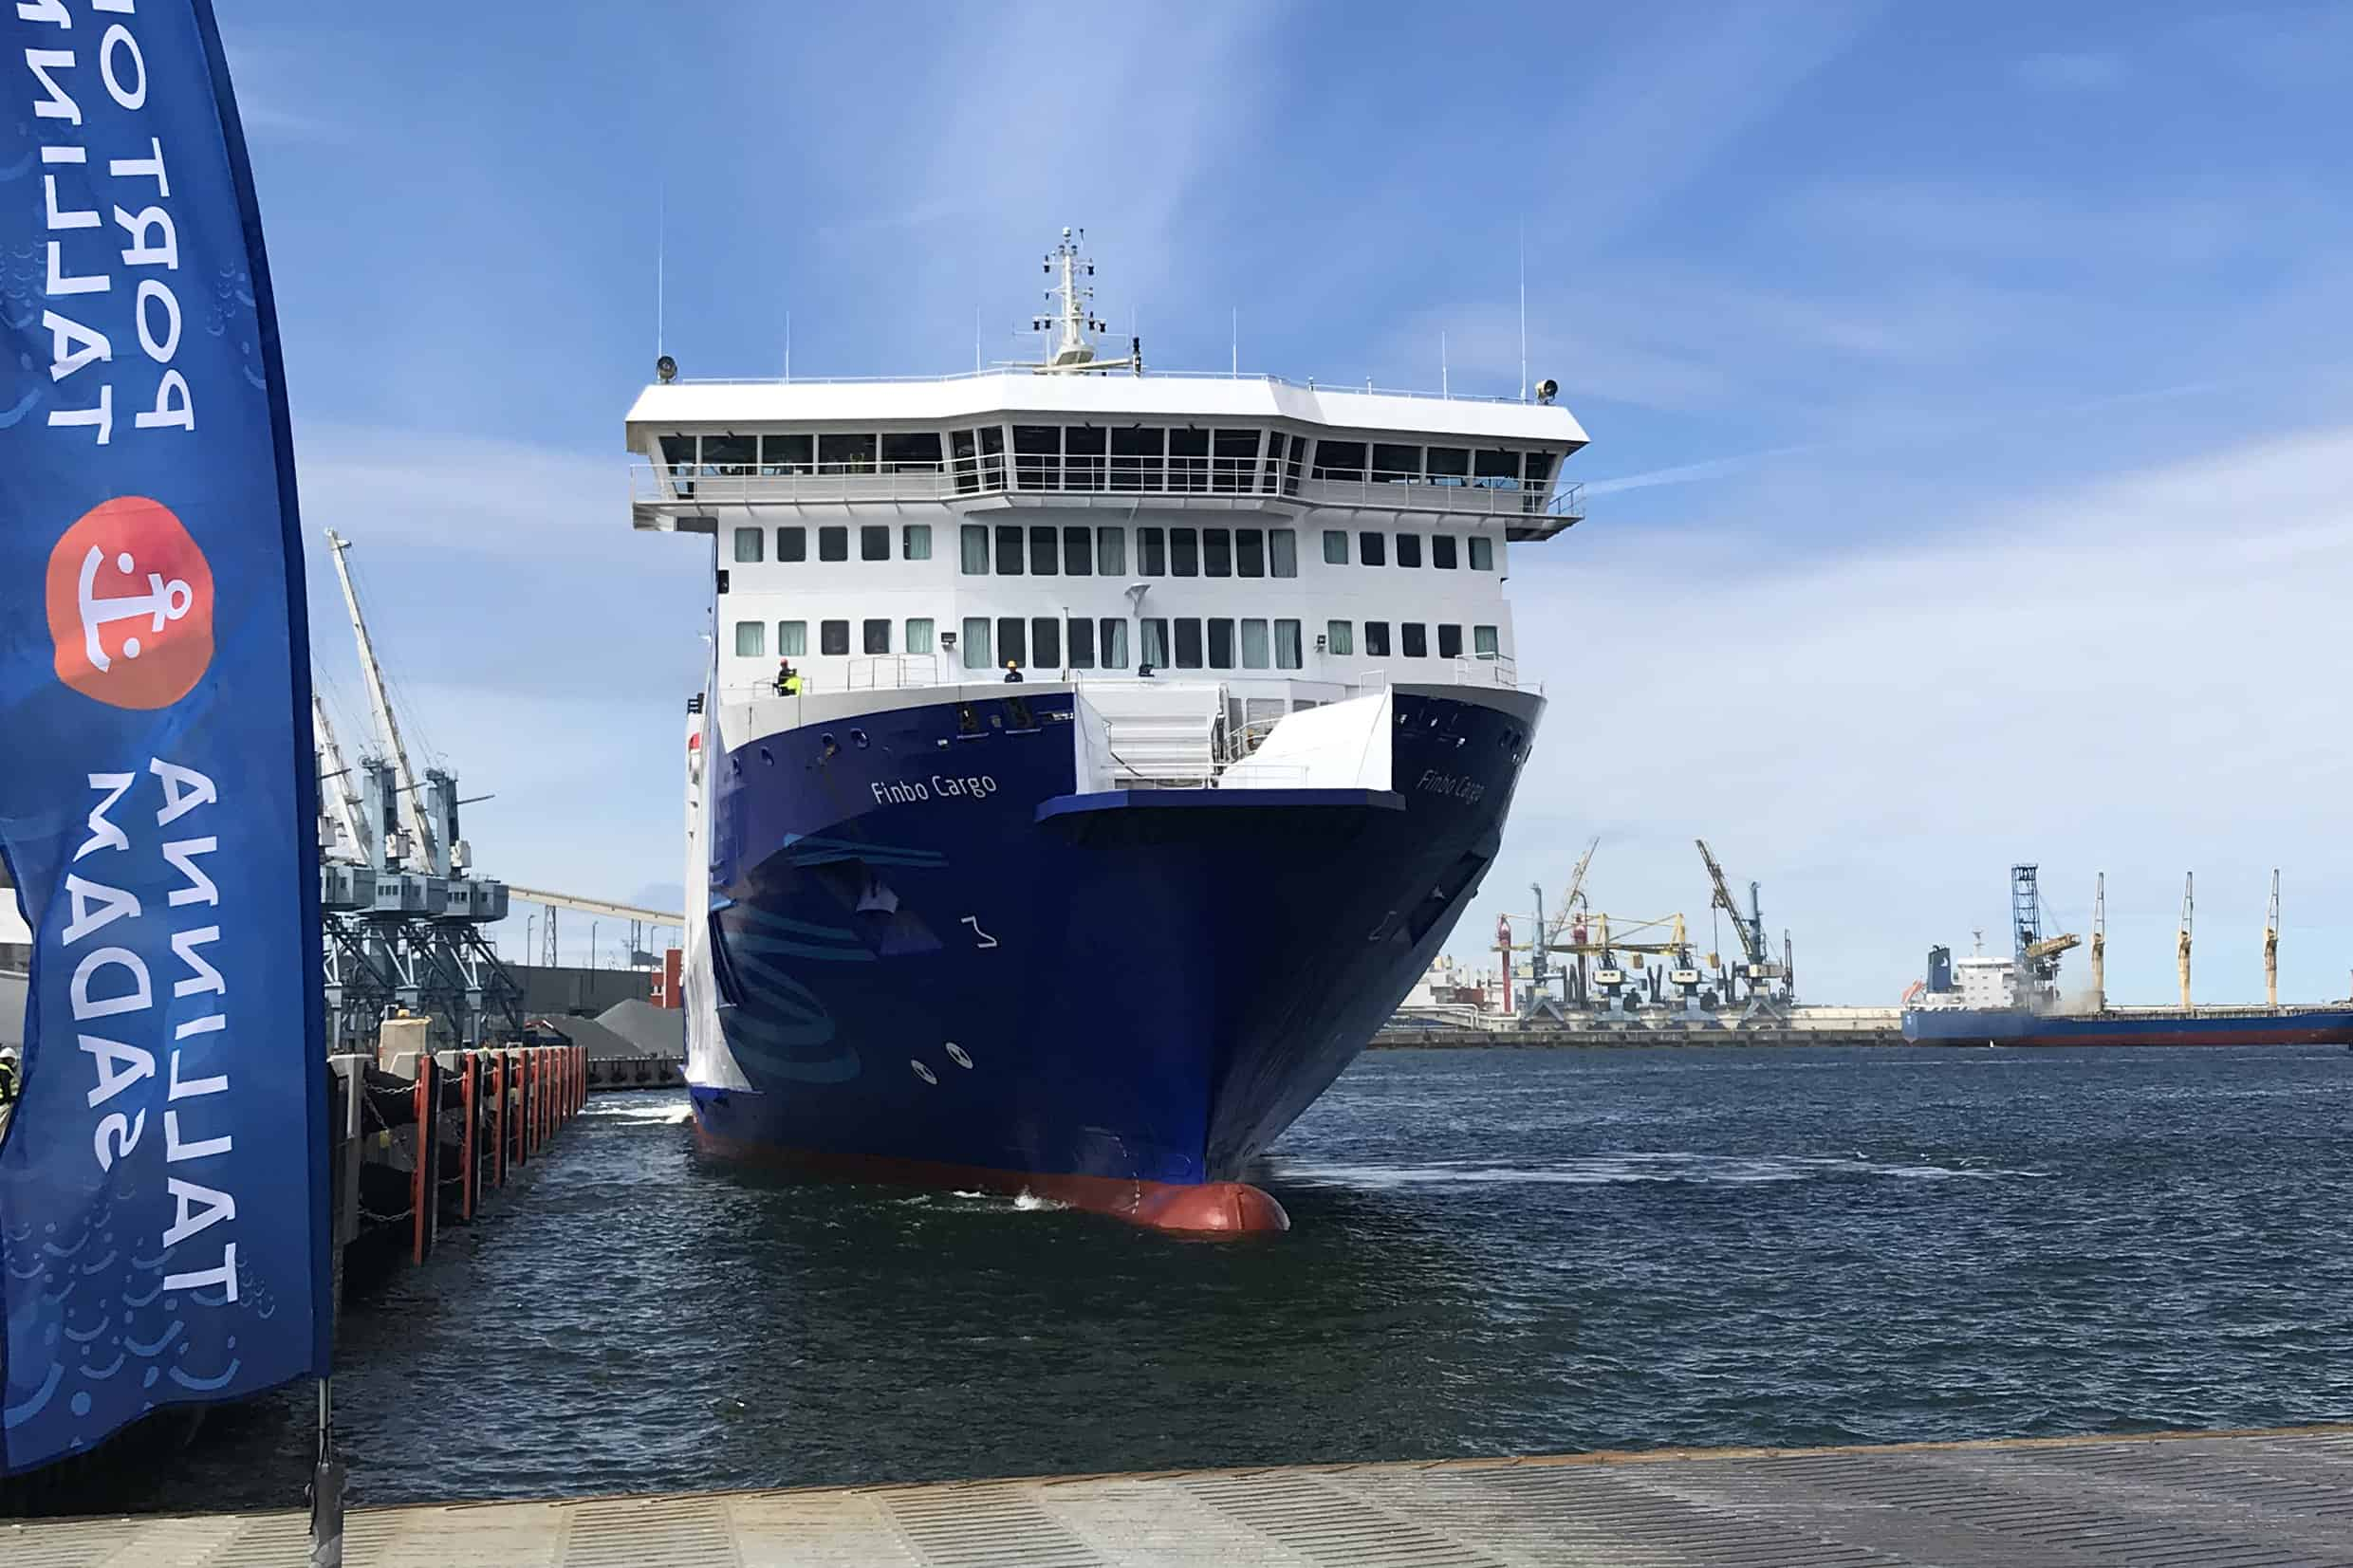 Port of Muuga gets new ferry connection to Finland